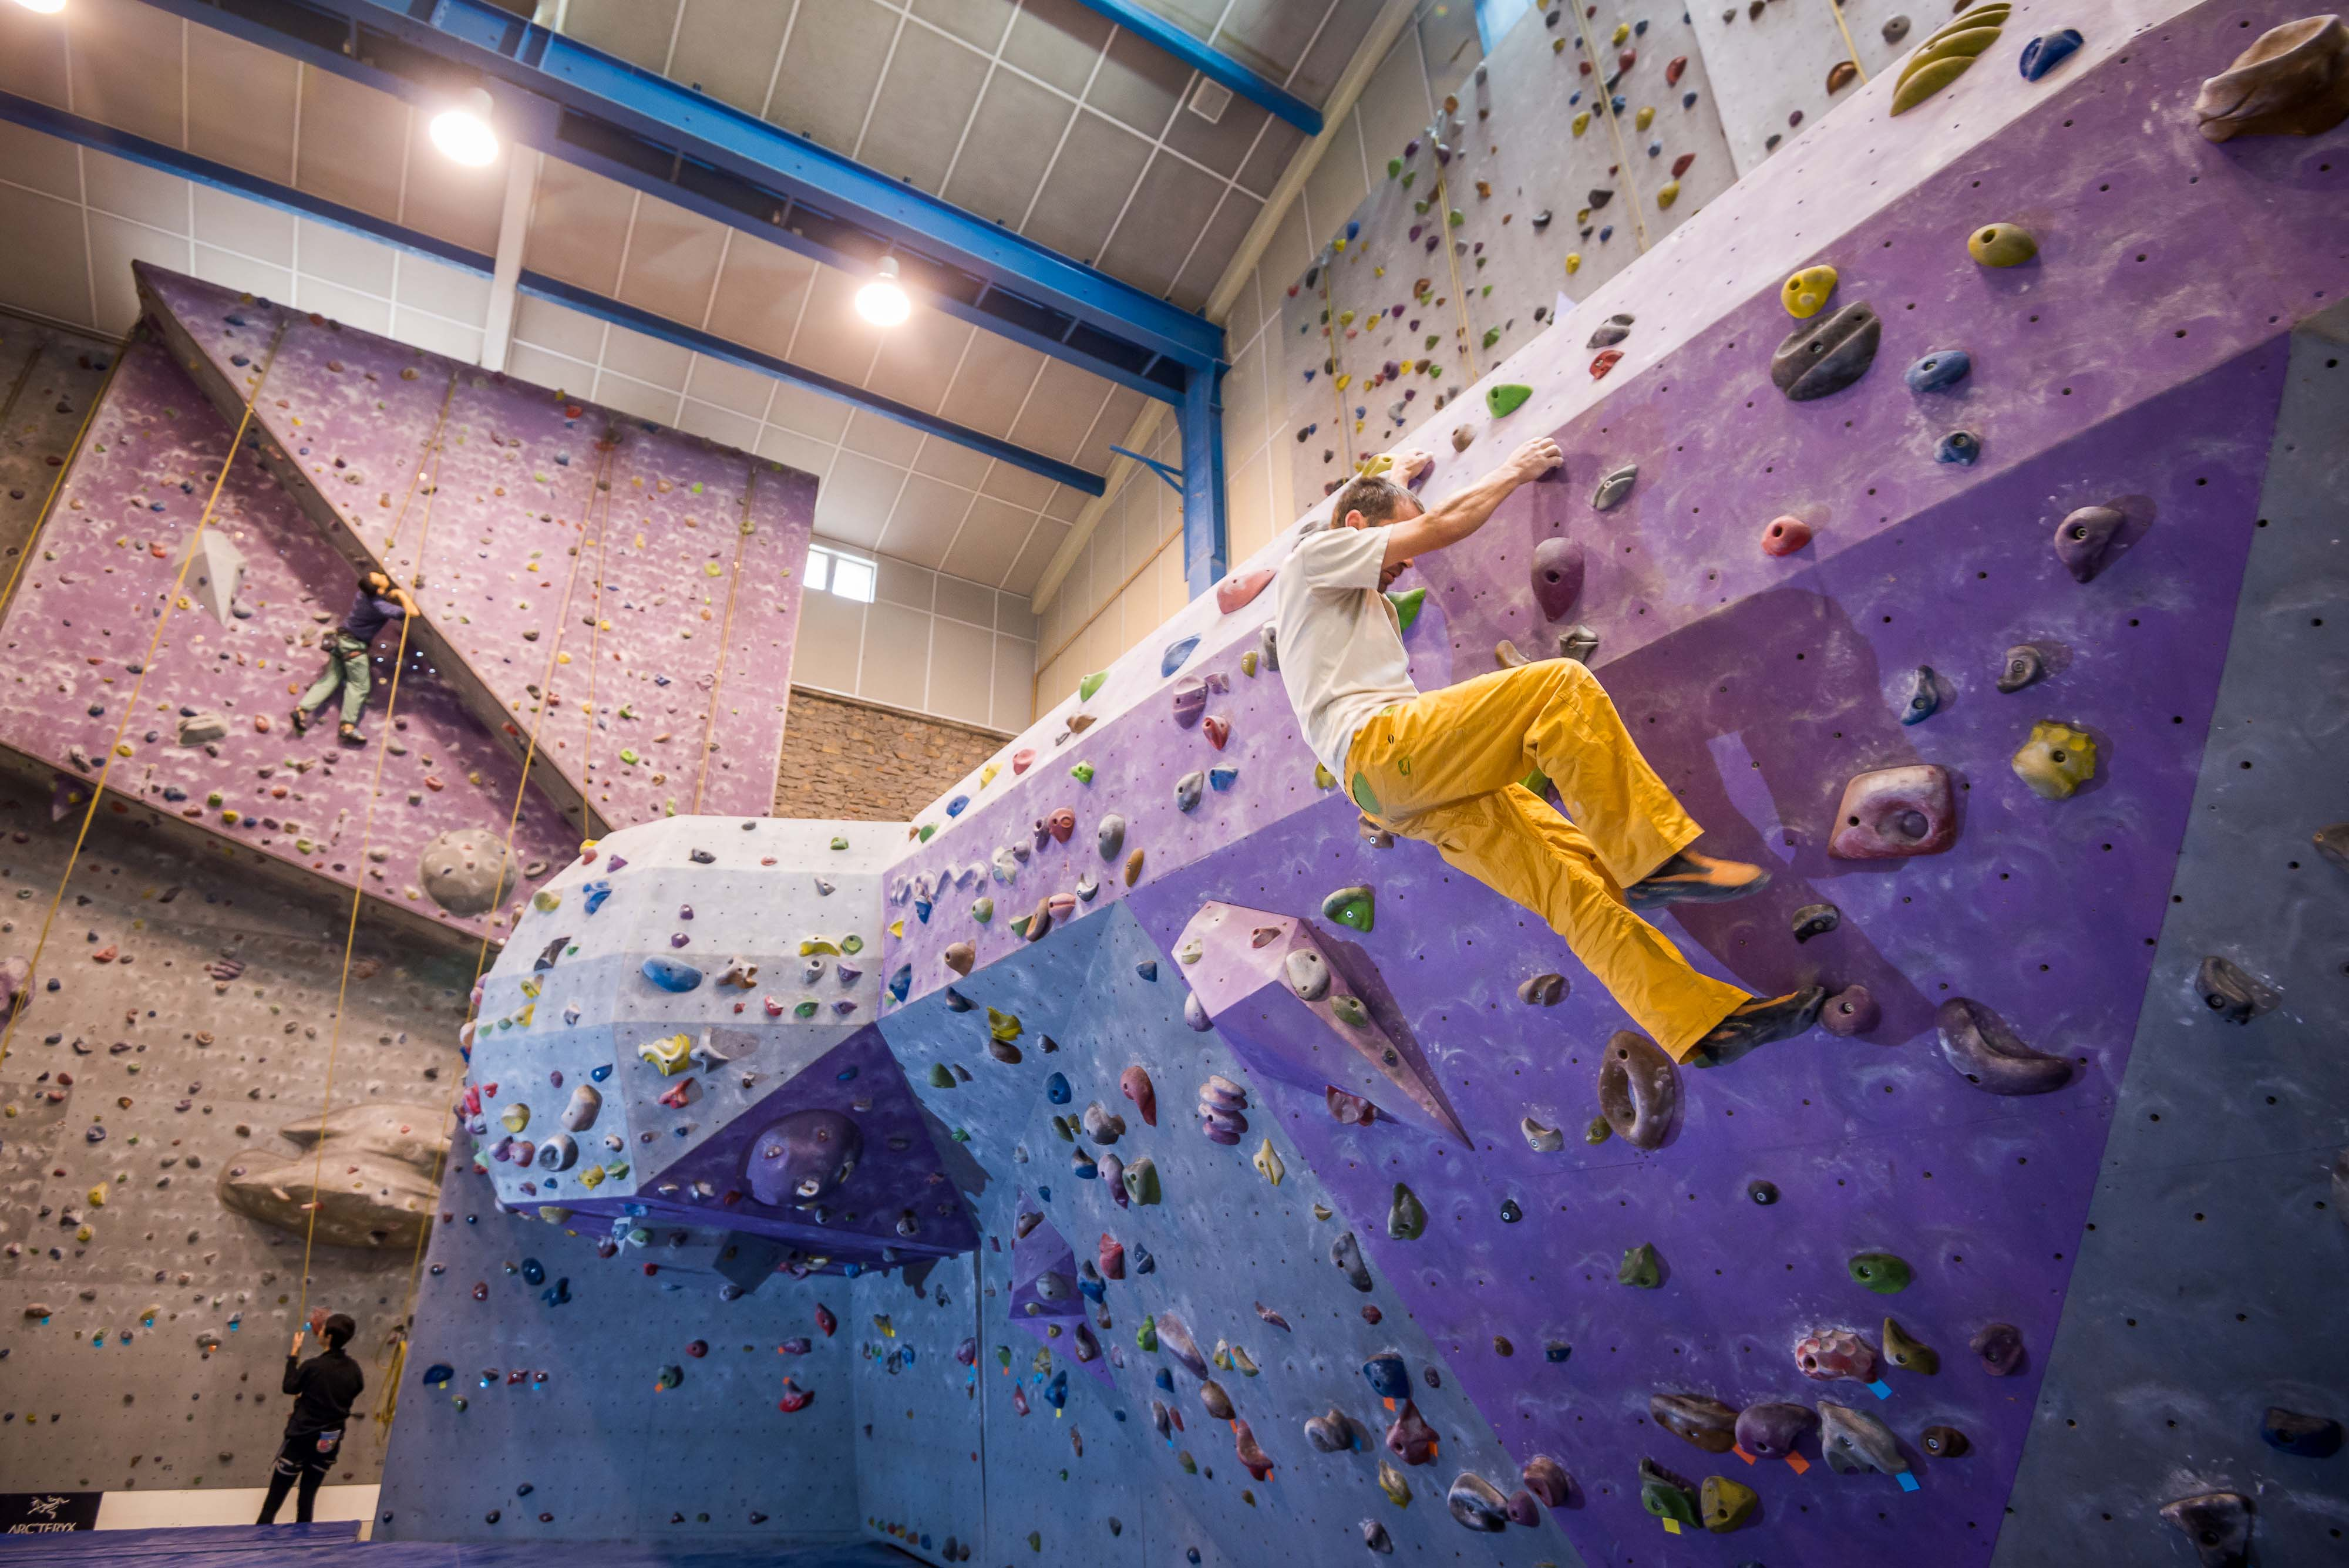 Rock Shop Montpellier Altissimo Montpellier Grabels Climbing Wall Montpellier Tourist